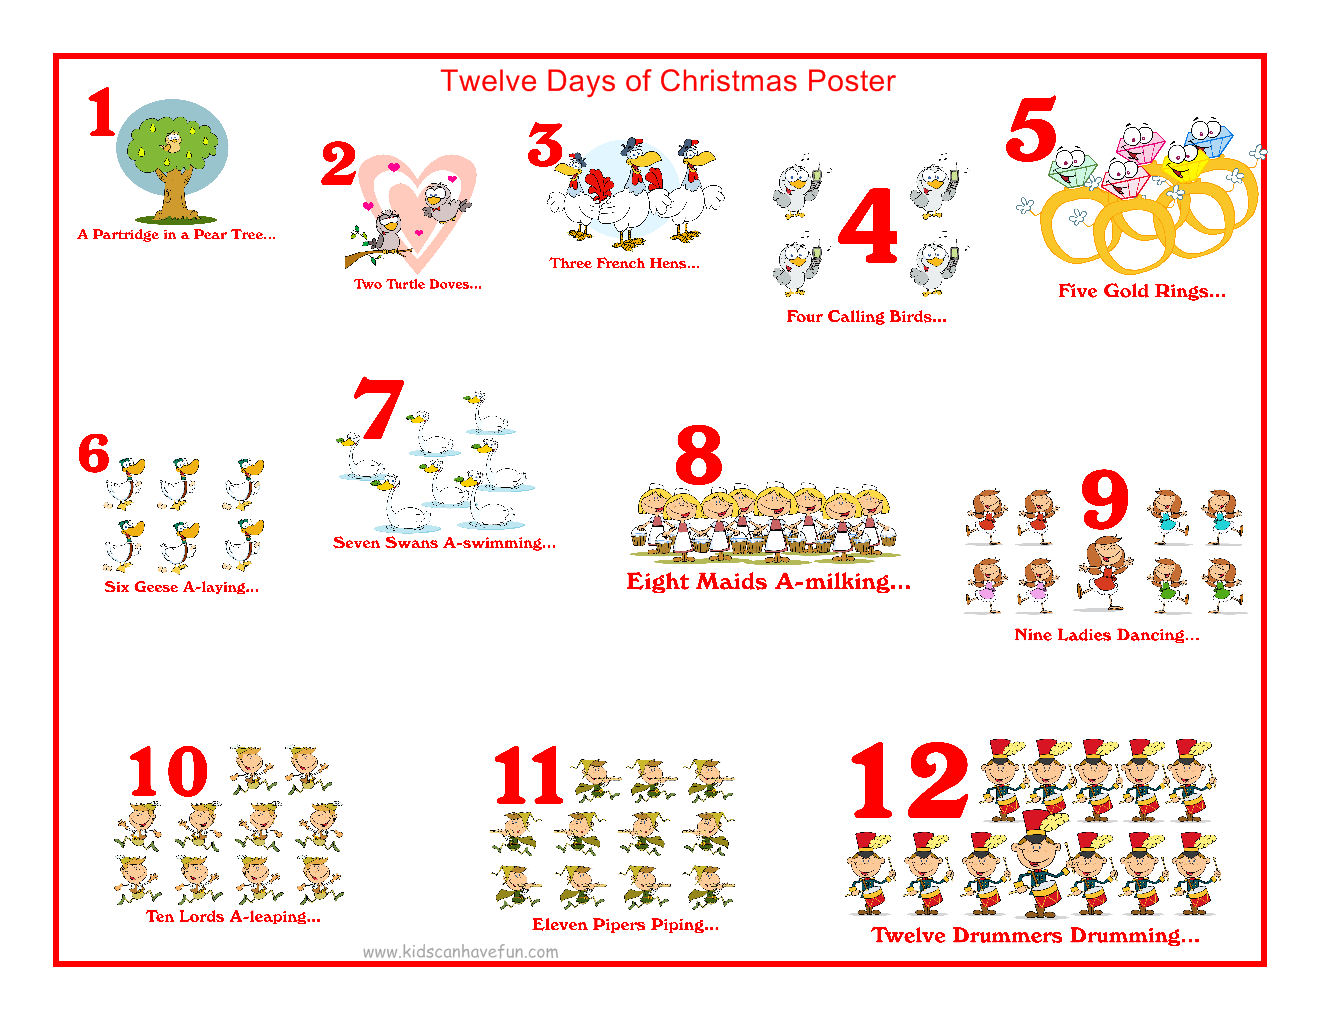 Insane image with regard to 12 days of christmas images printable